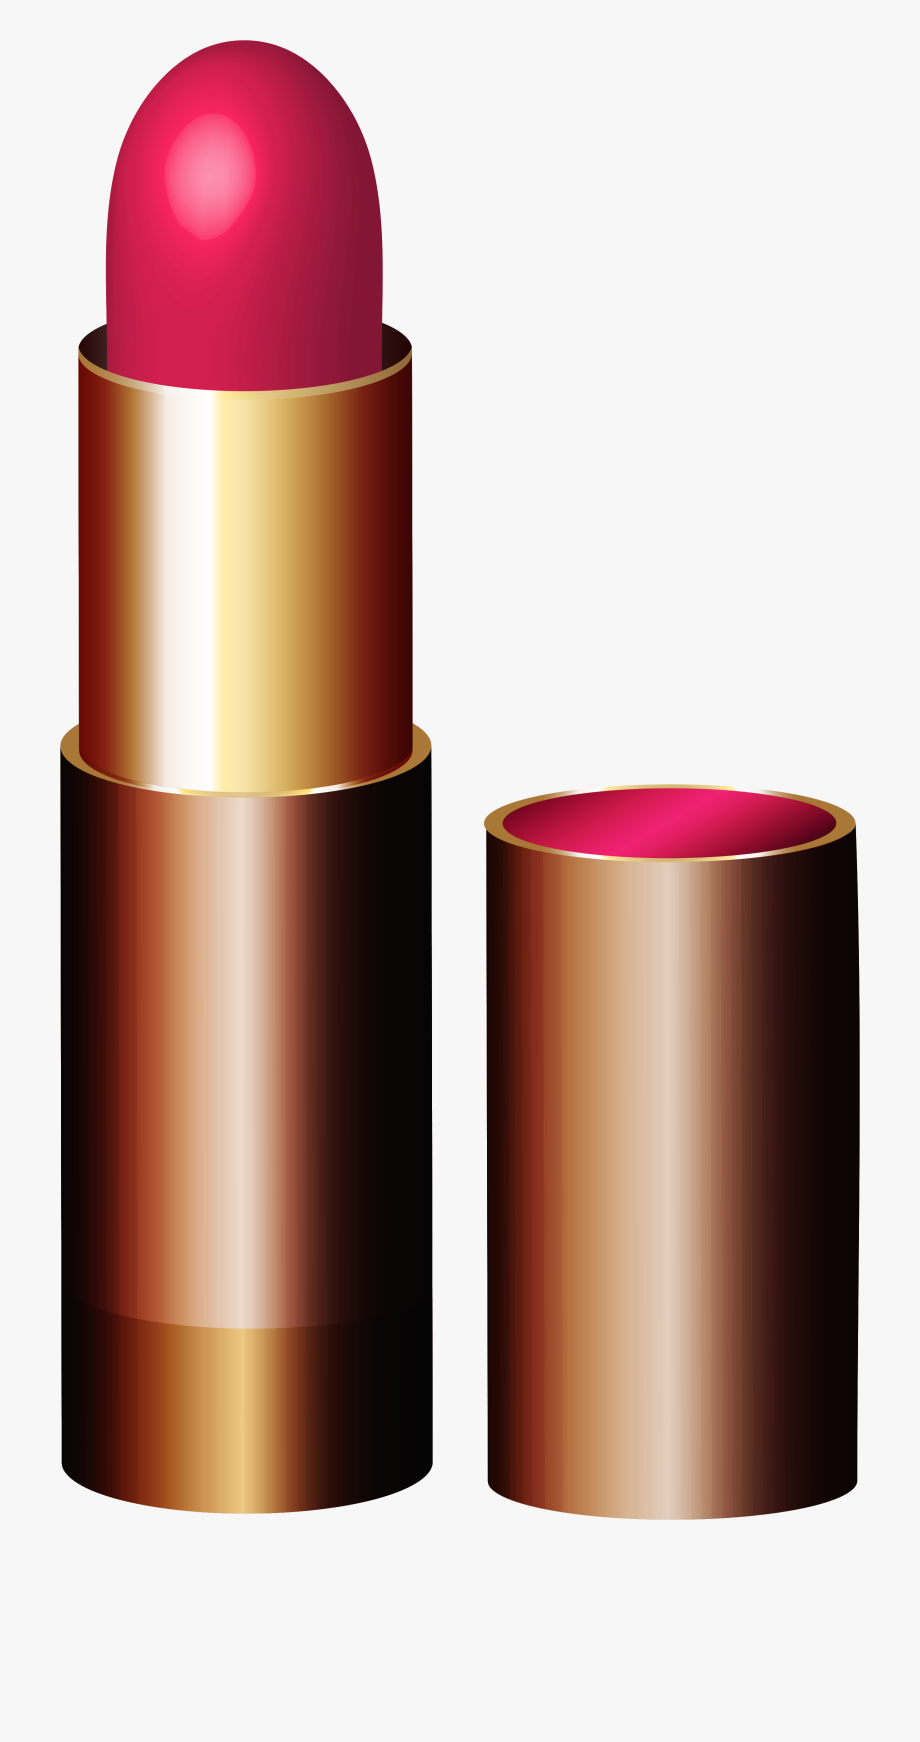 Lipstick clipart object. Png transparent cartoon free